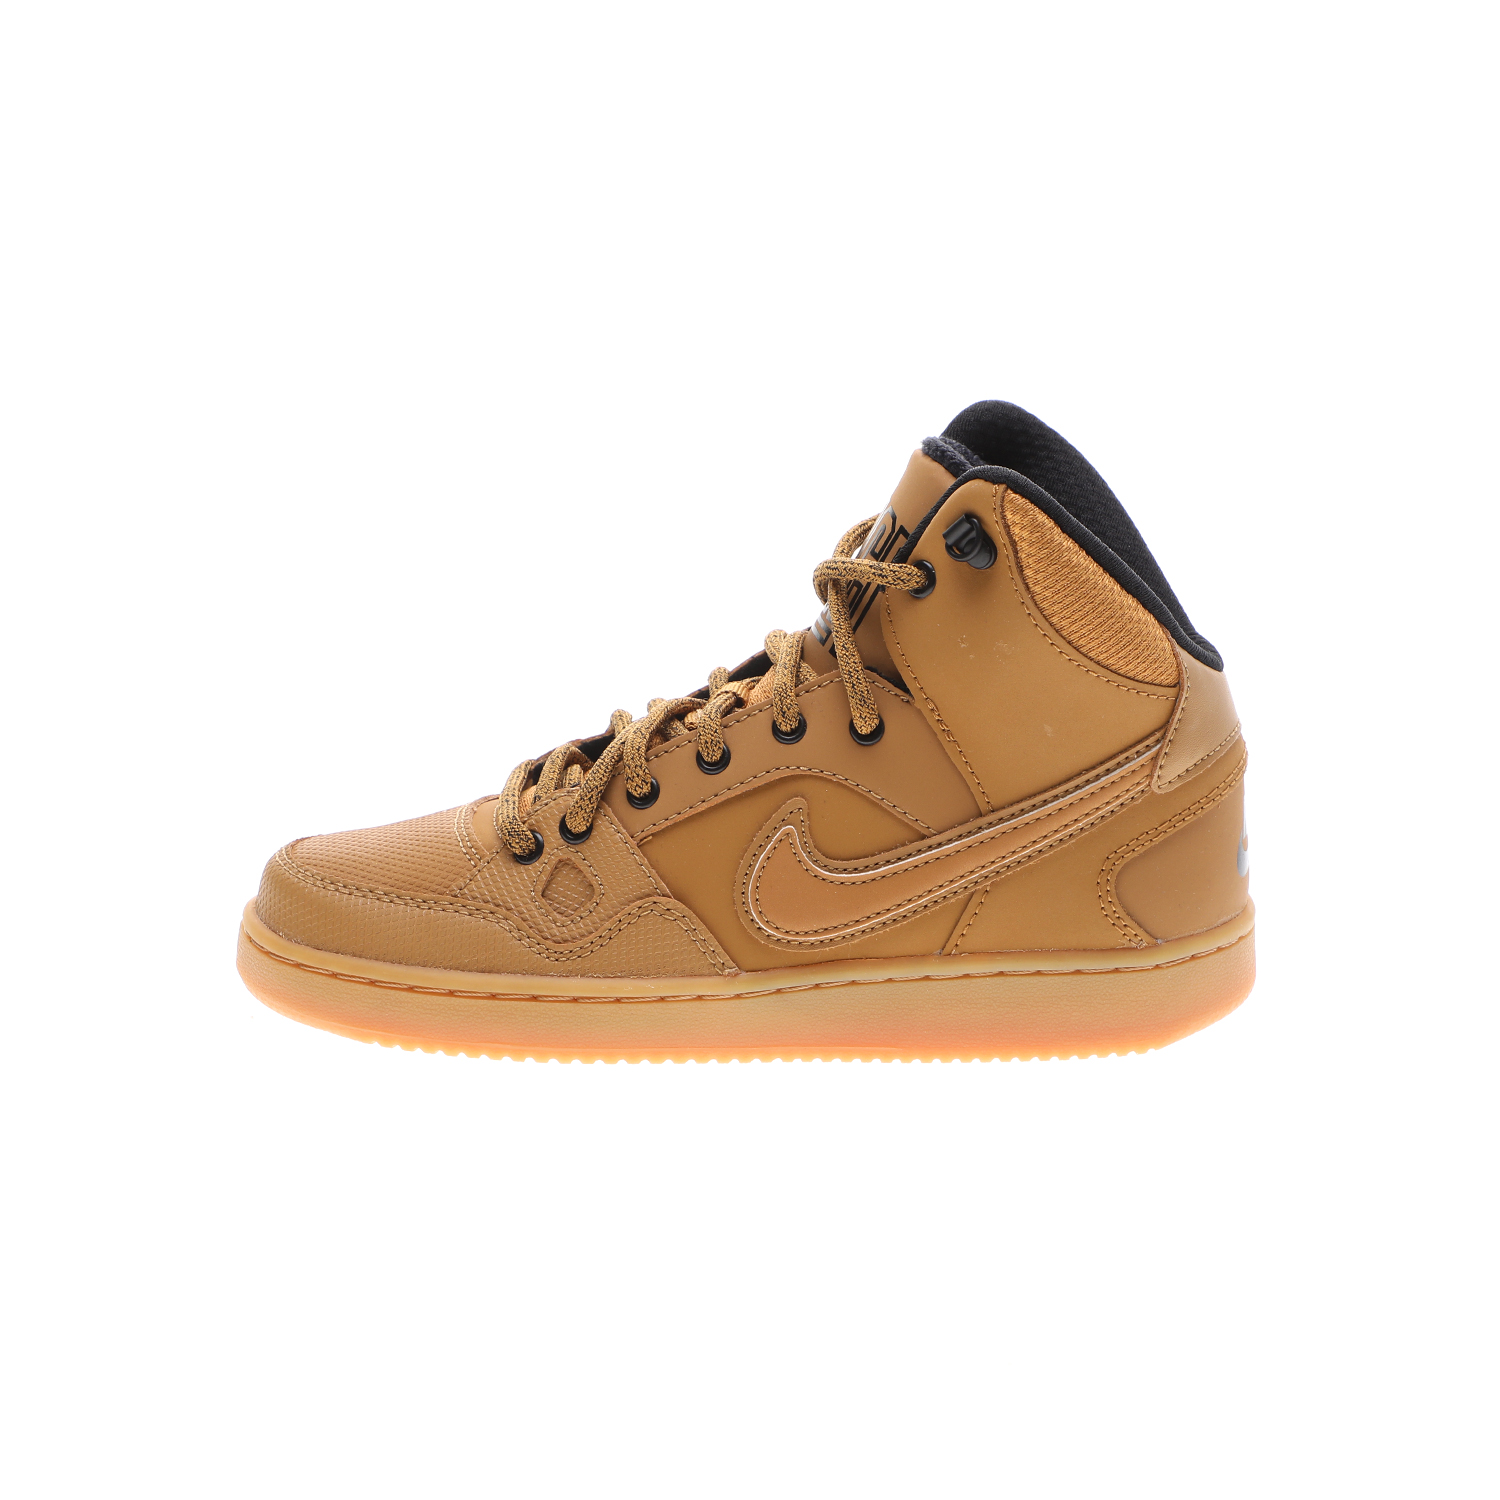 NIKE – Παιδικά παπούτσια basketball SON OF FORCE MID WINTER (GS) μπεζ